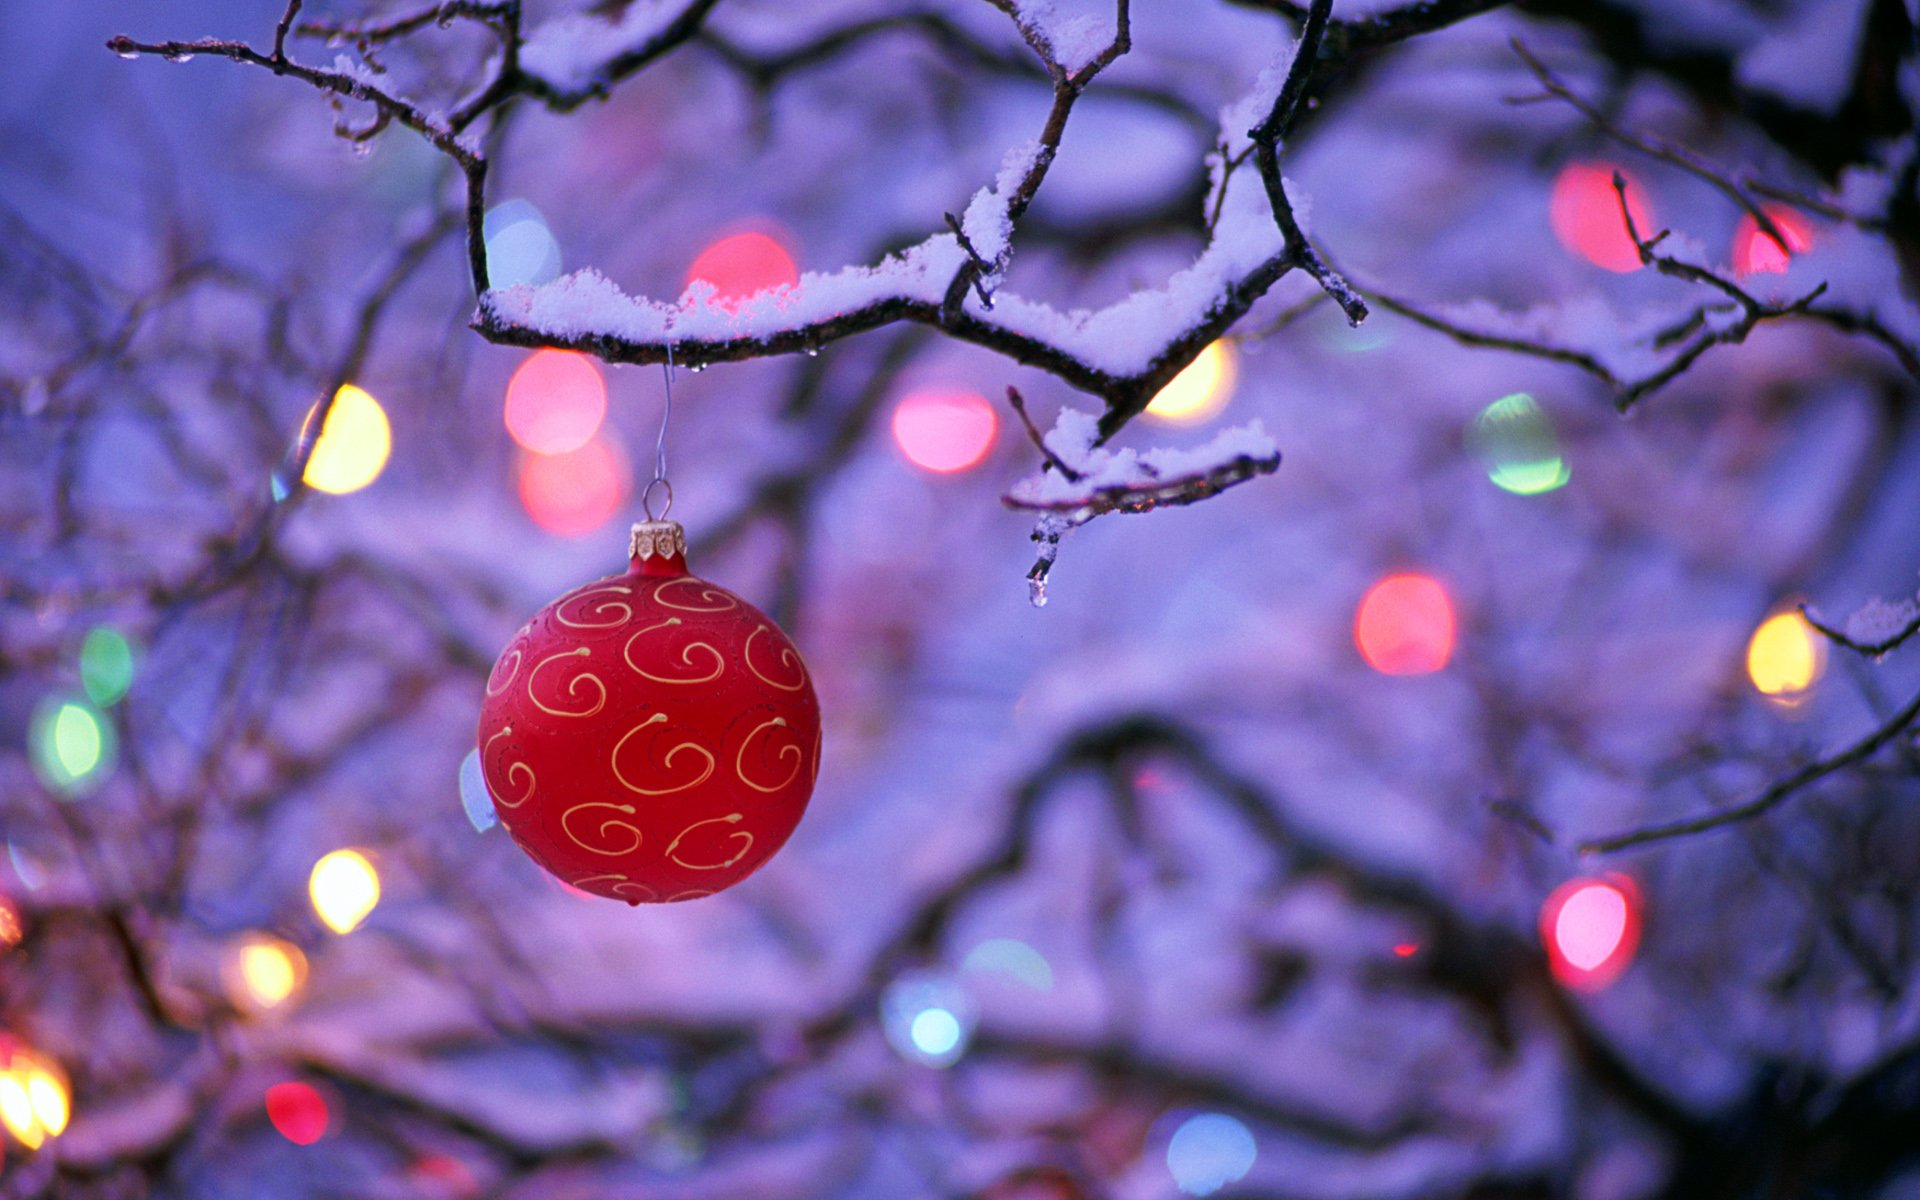 desktop wallpaper winter christmas - www.wallpapers-in-hd.com